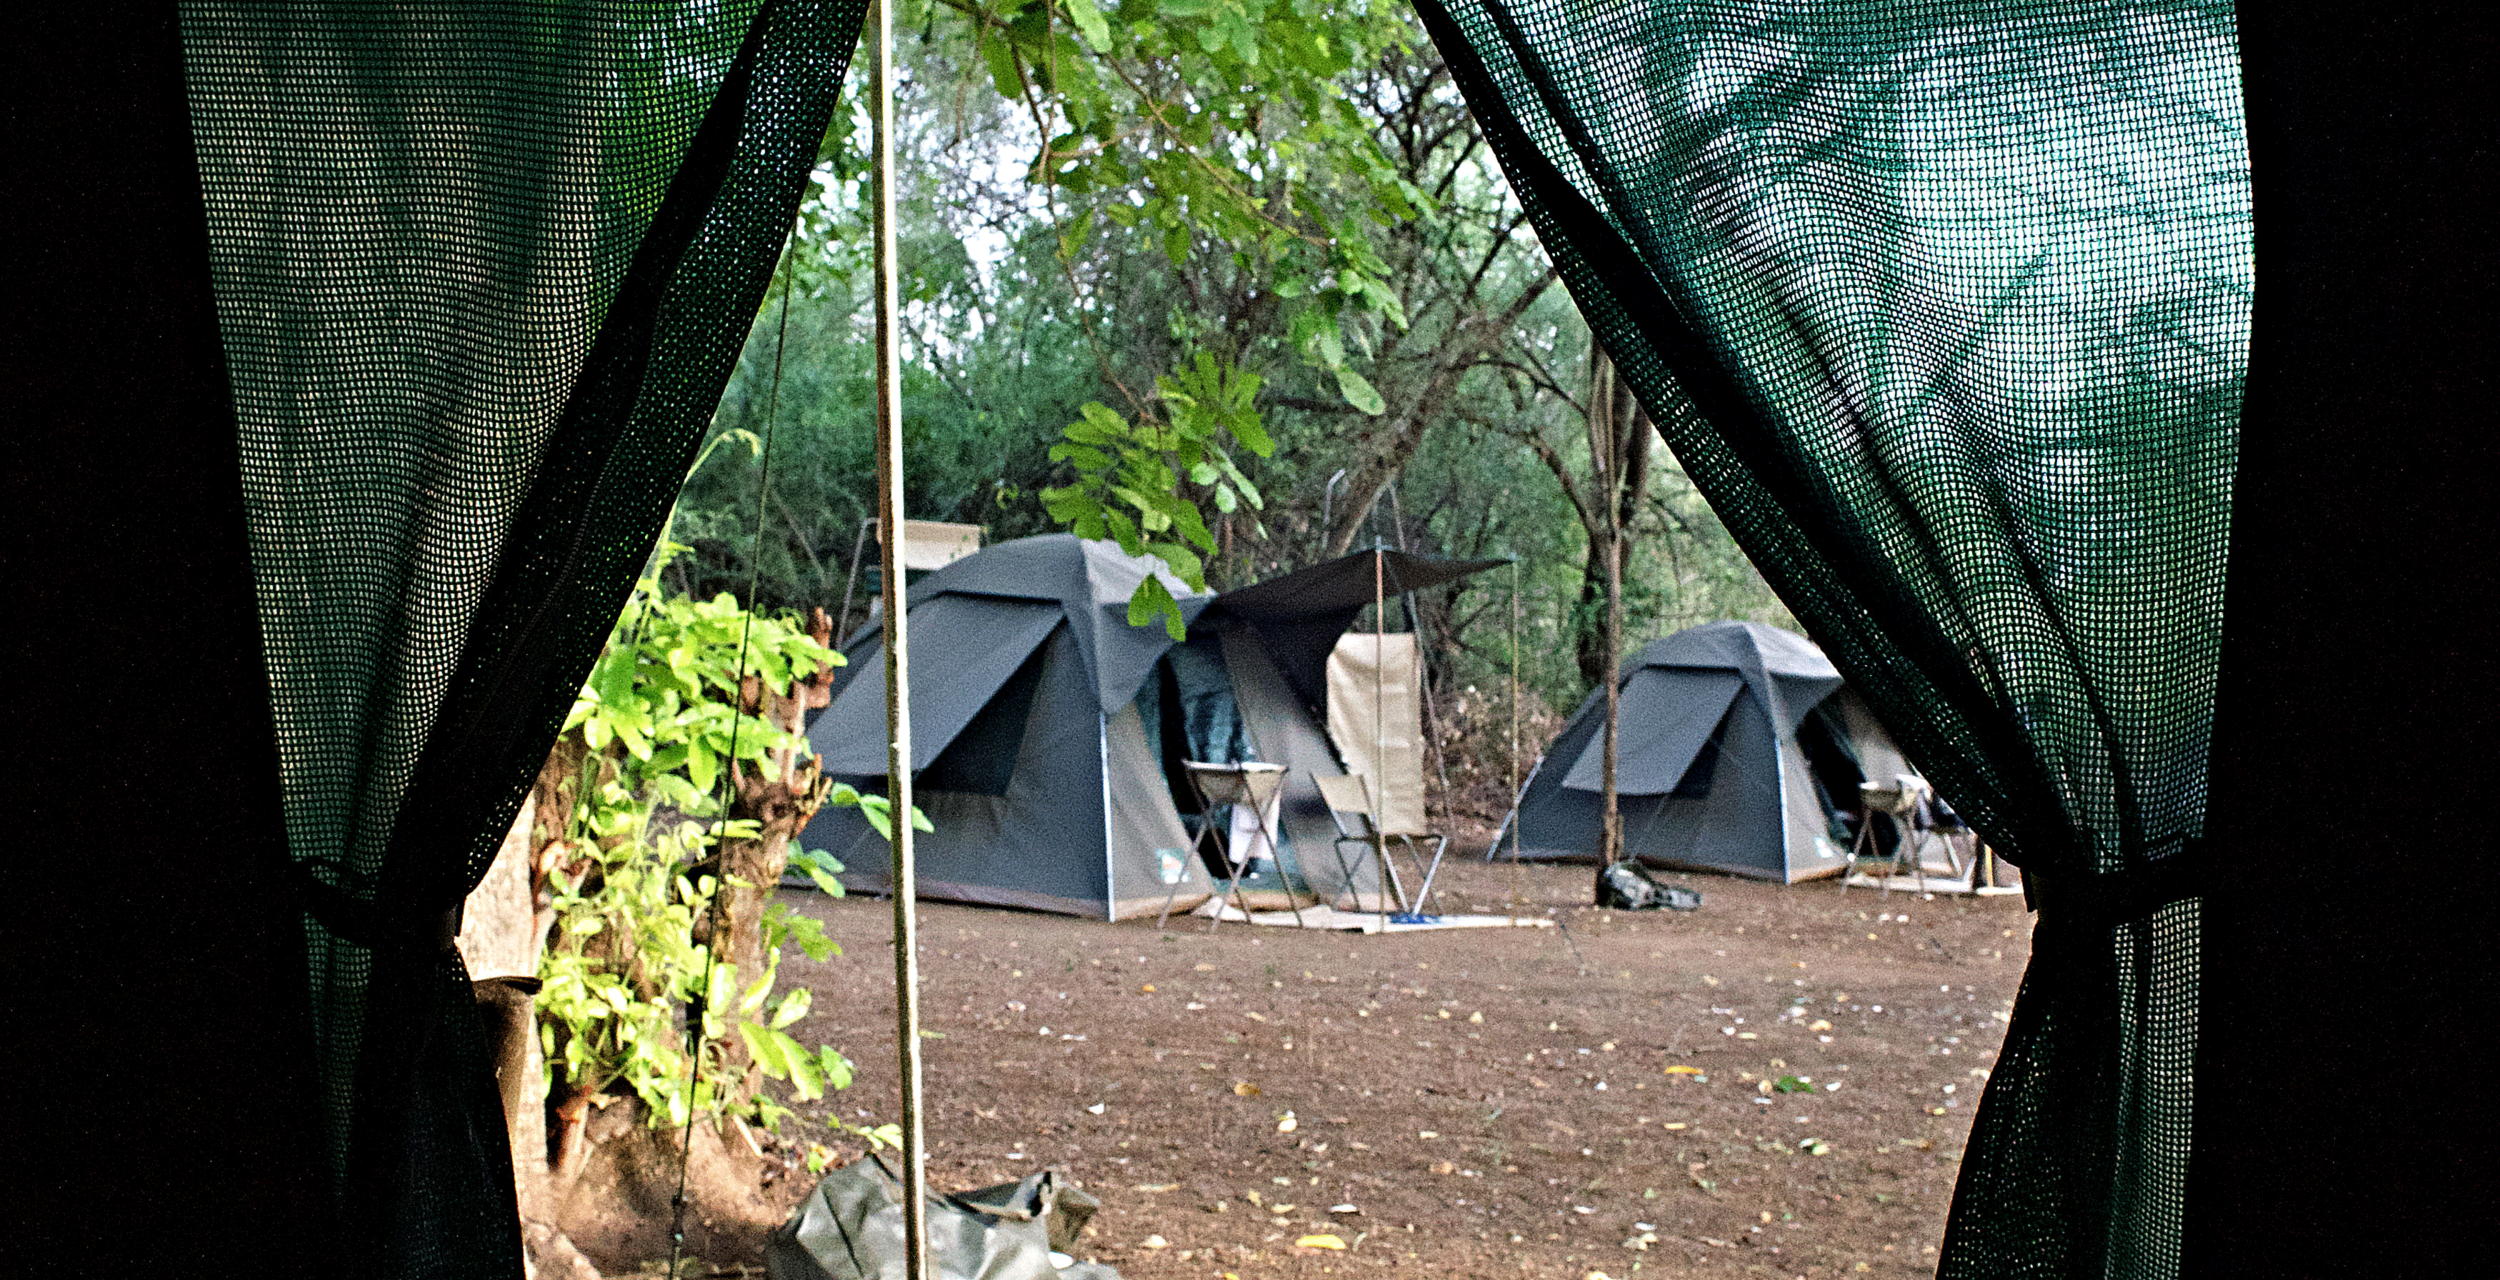 Mursi-Fly-Camp-Omo-River-Ethiopia-2017.png